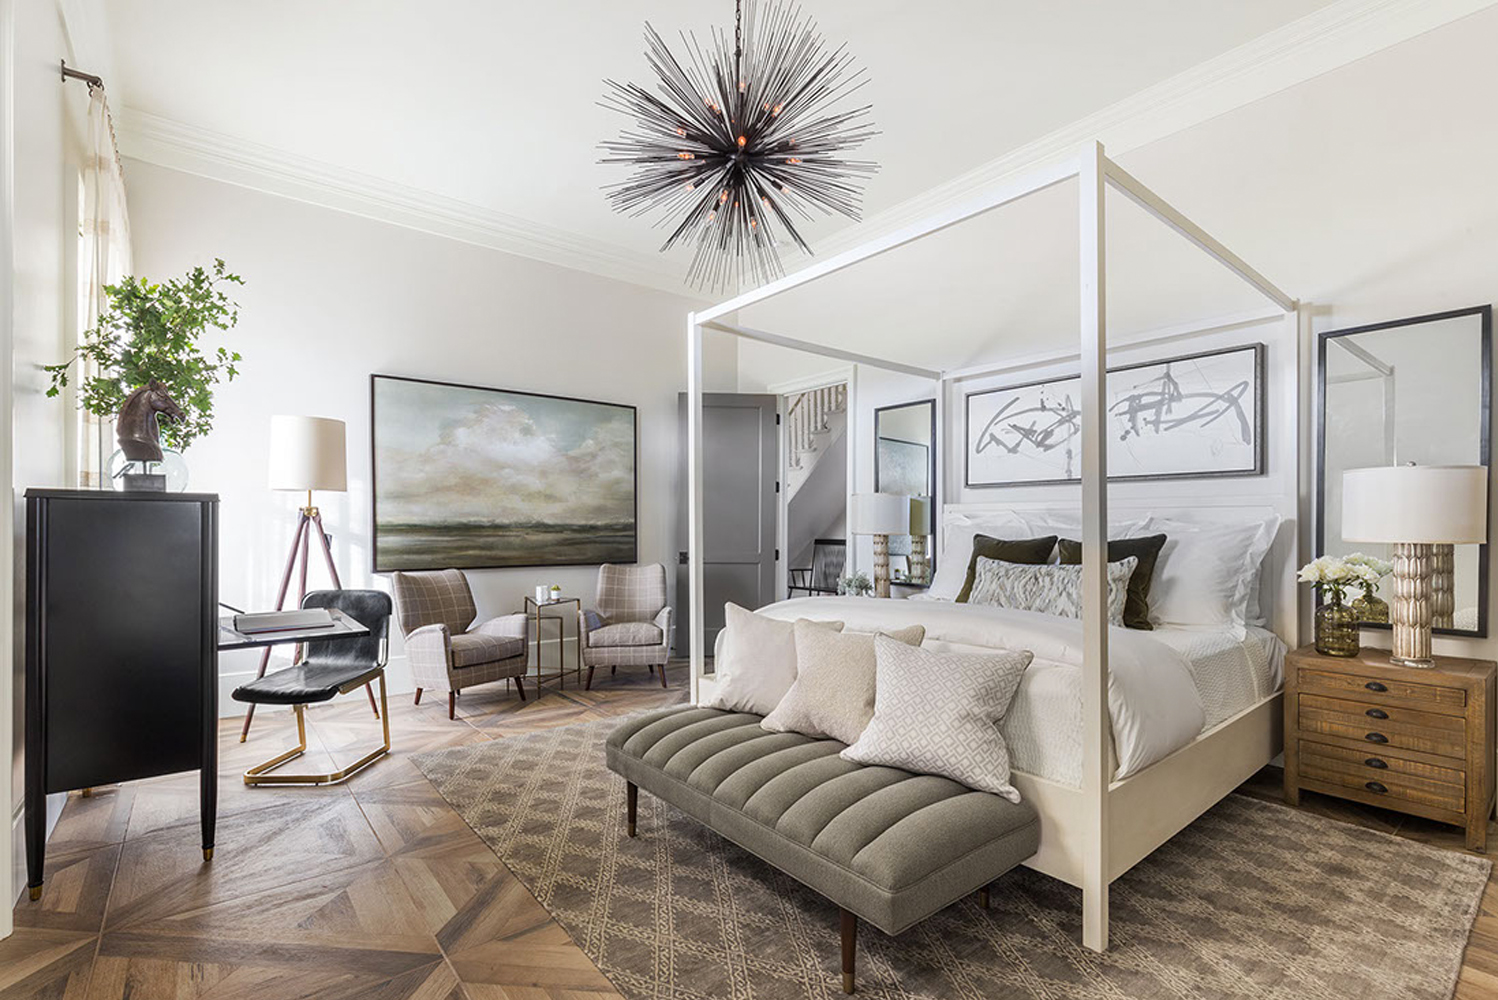 Castellucci Napa Valley soft-opened The Ink House, a four-bedroom boutique luxury inn along St. Helena So Highway, St. Helena, CA.